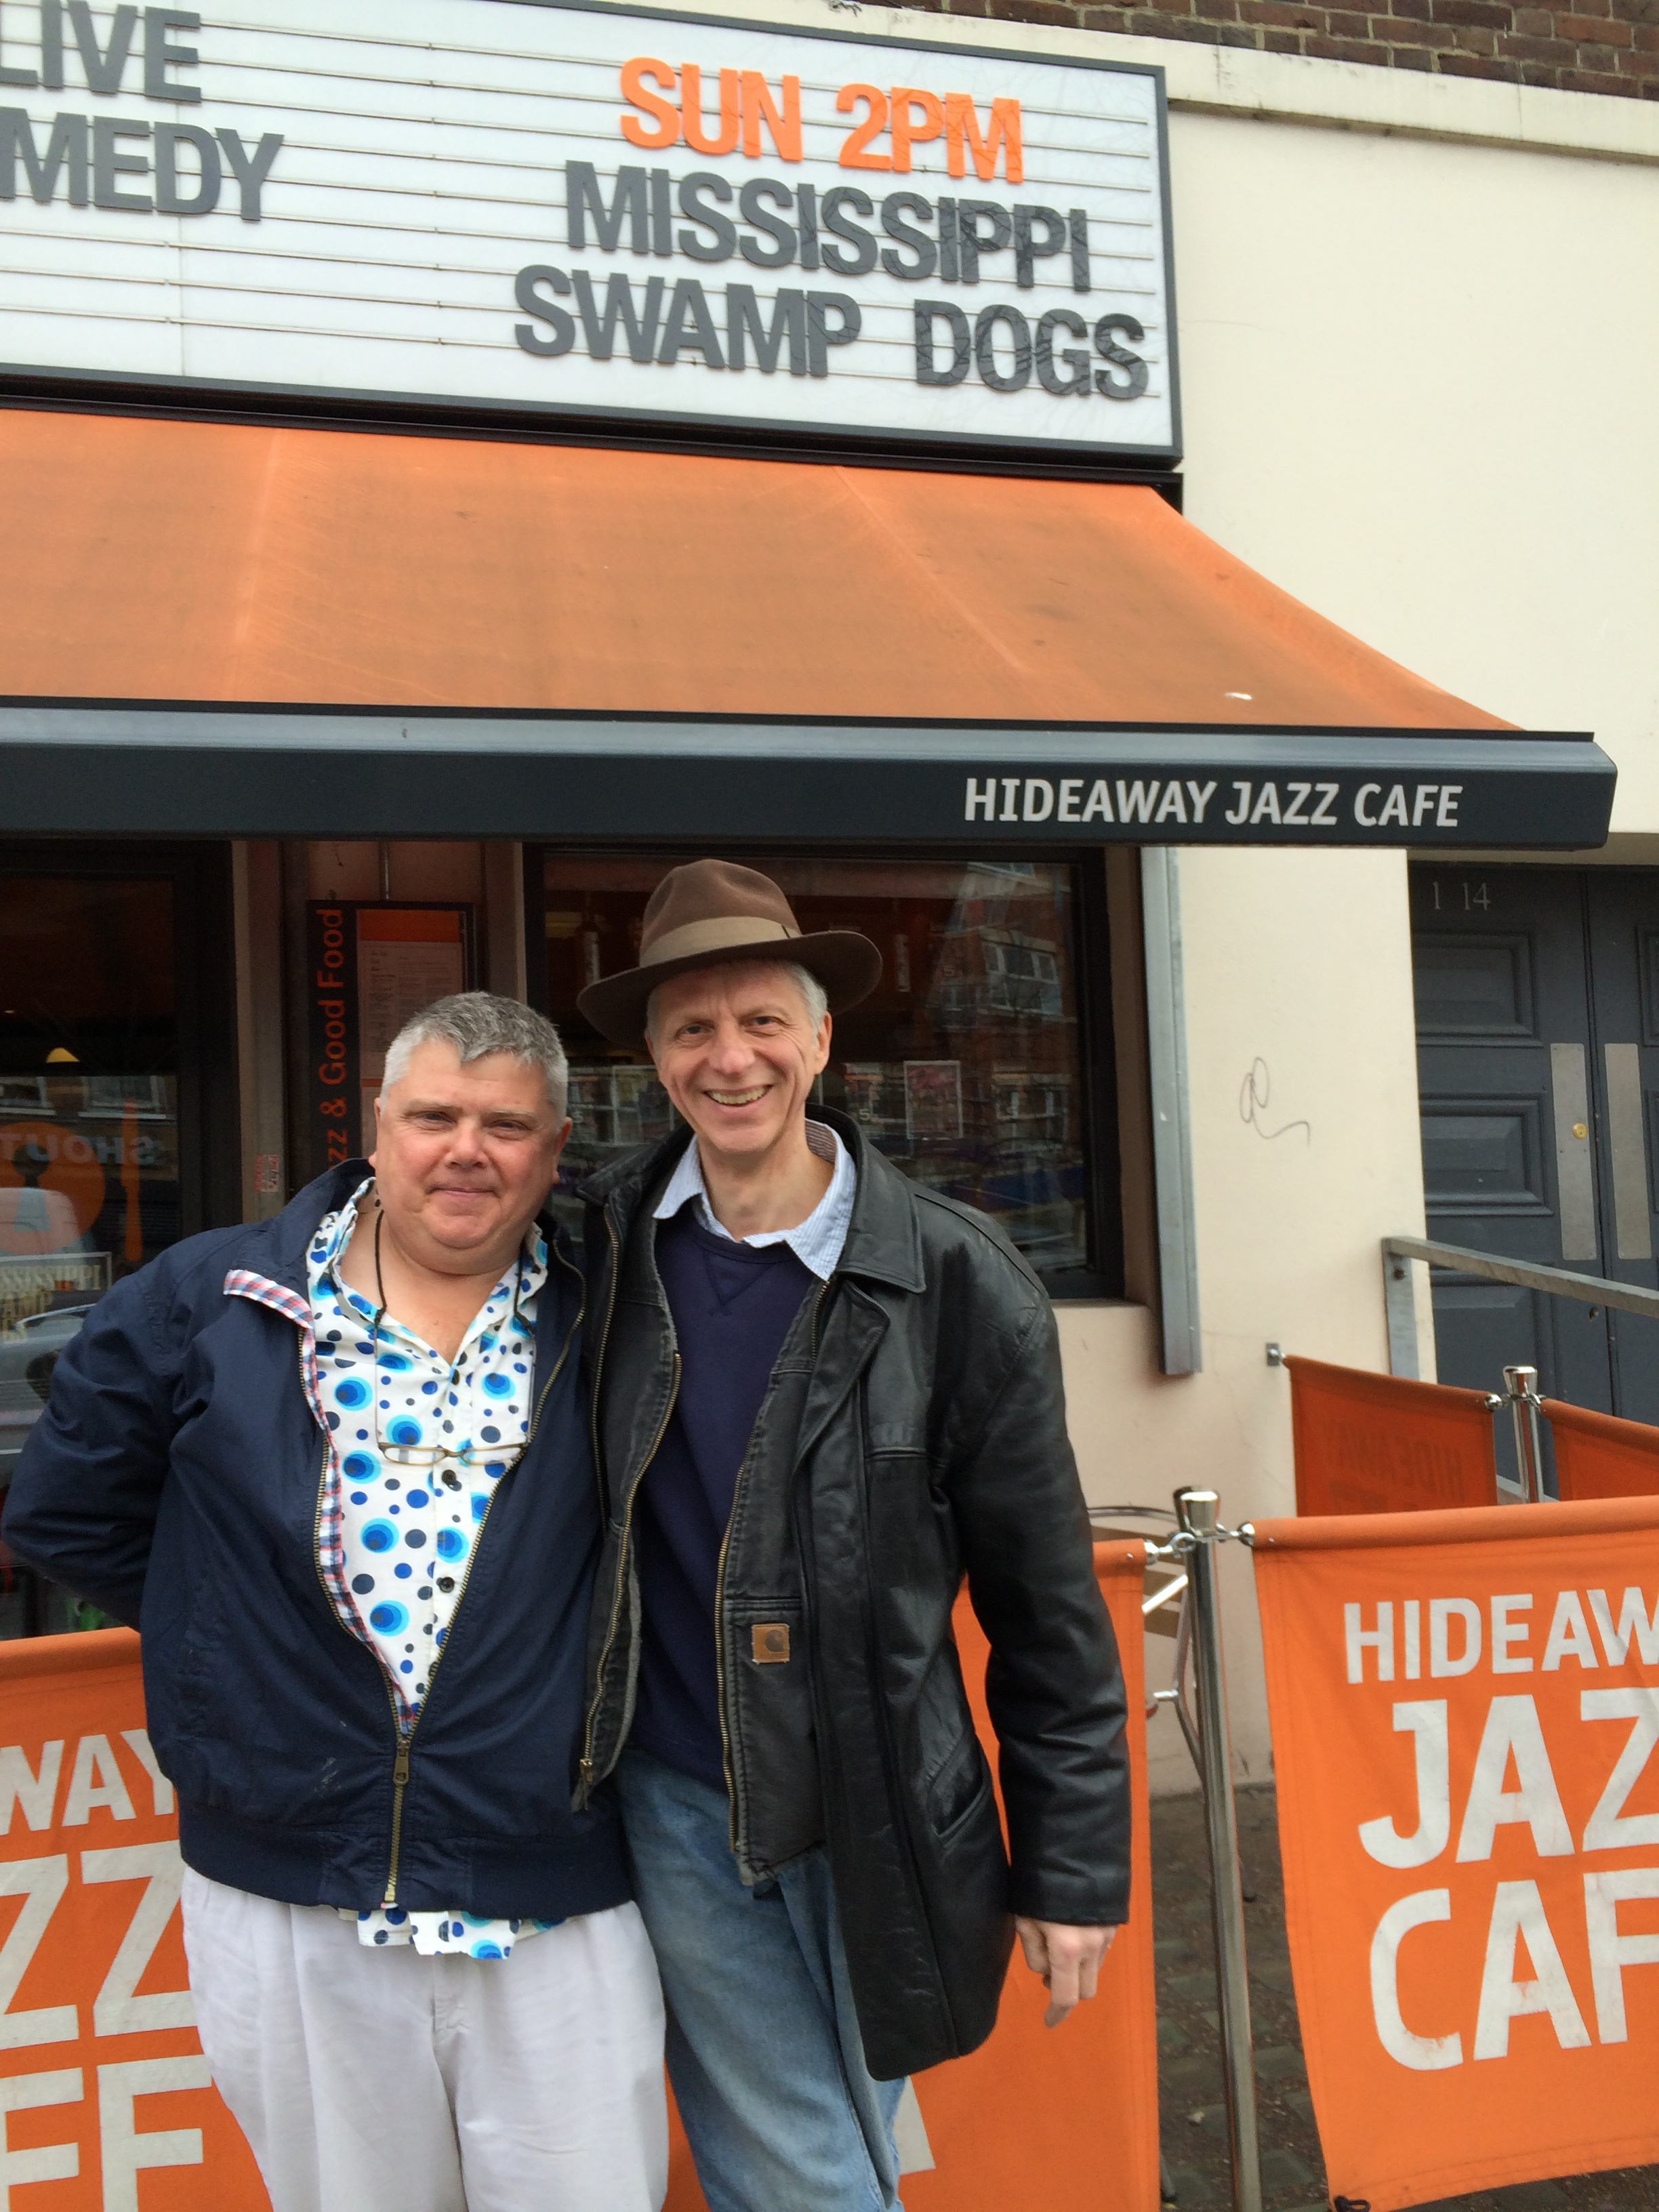 Jeff and Jonno, Mississippi Swamp Dog members outside the Hideaway Jazz Cafe in South London before another triumph of a gig!